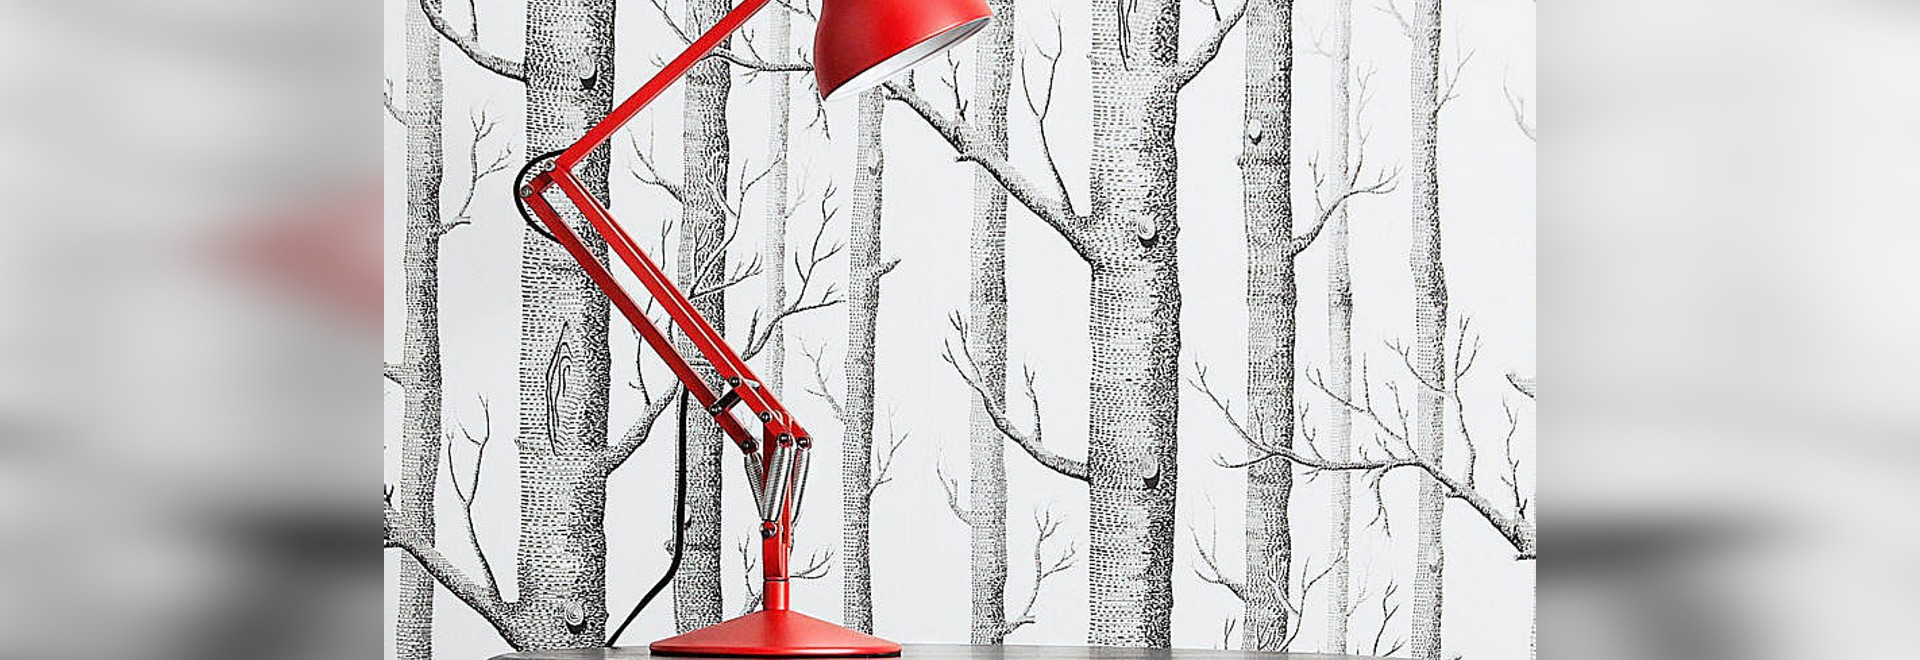 New Table desk lamp by Anglepoise